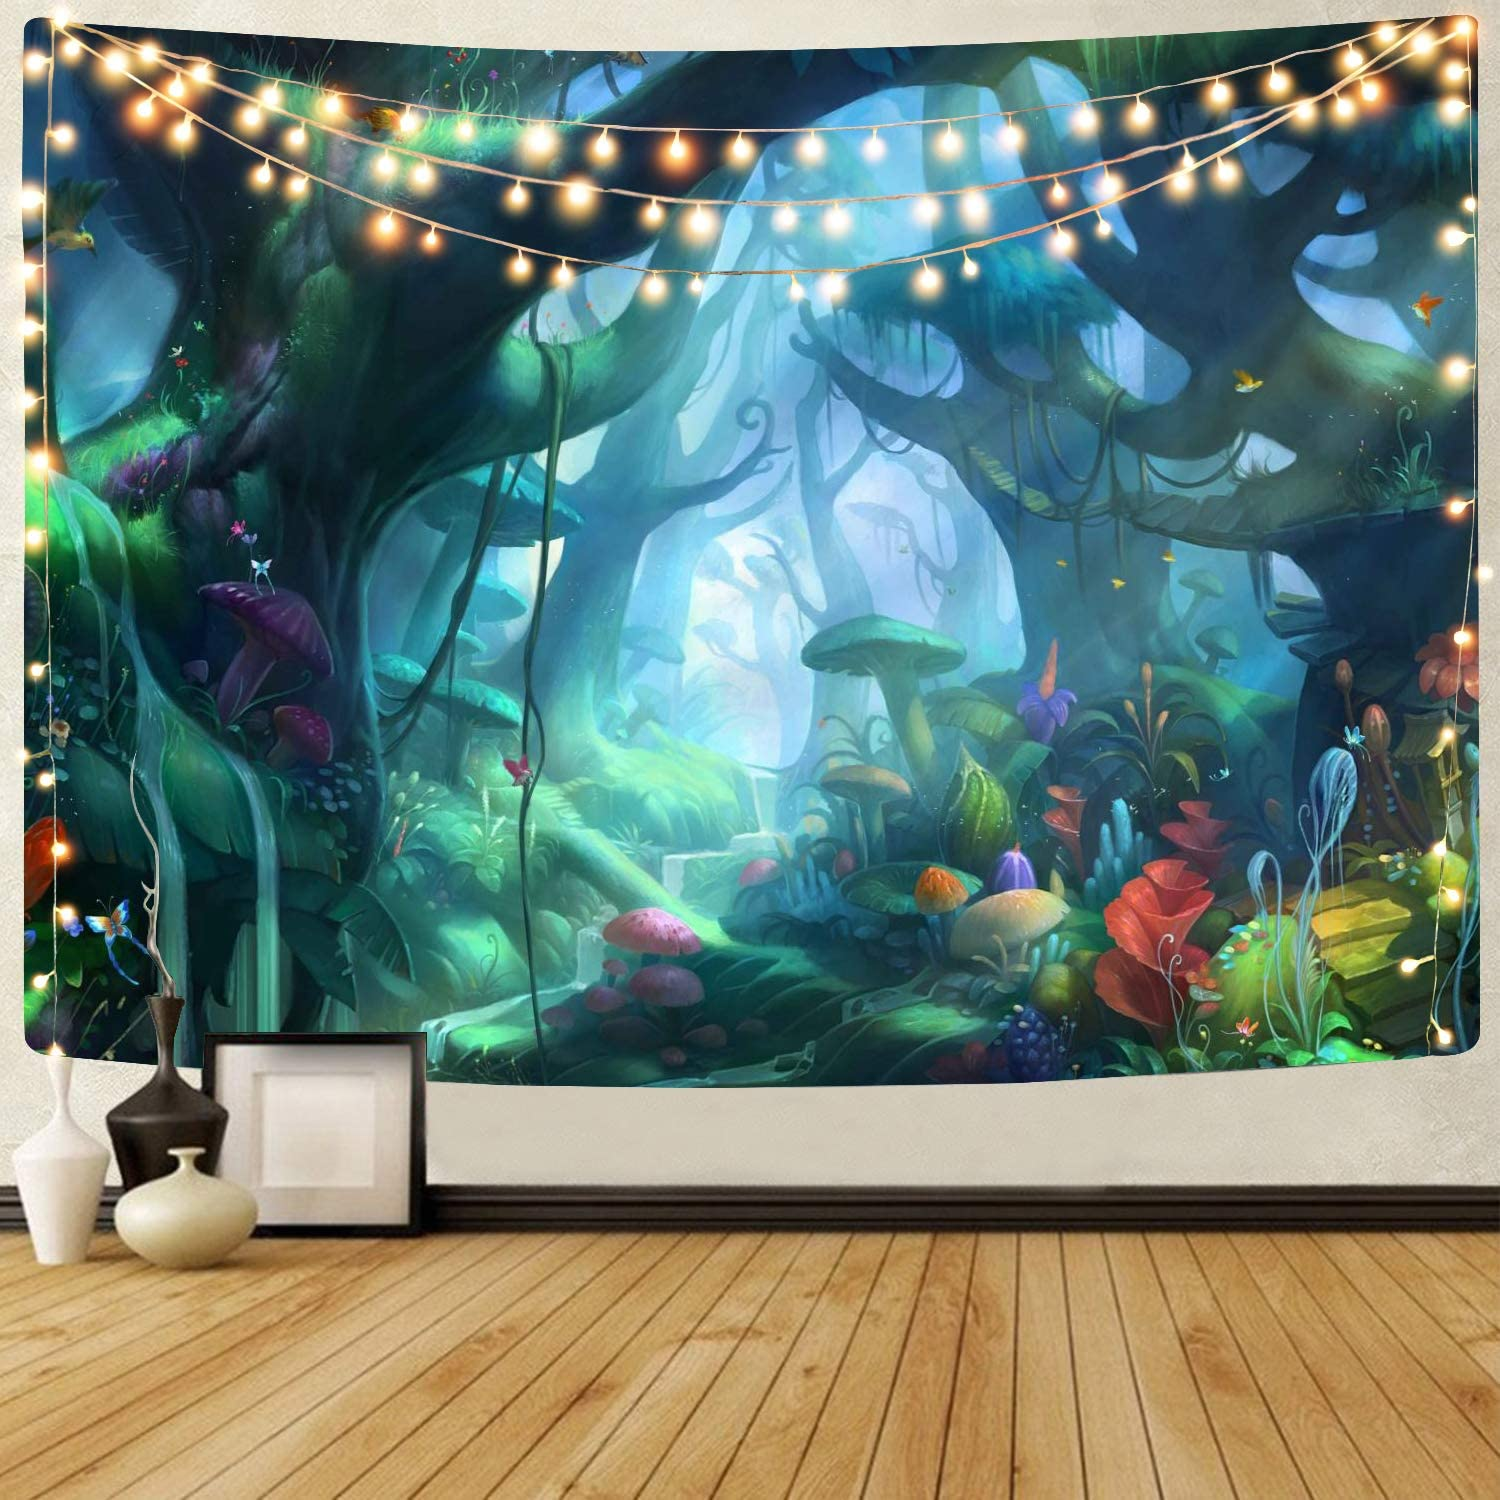 Sportbull Sales for sale Fairy Forest Tapestry Cartoons Graph Max 76% OFF Plant 3D Fantasy